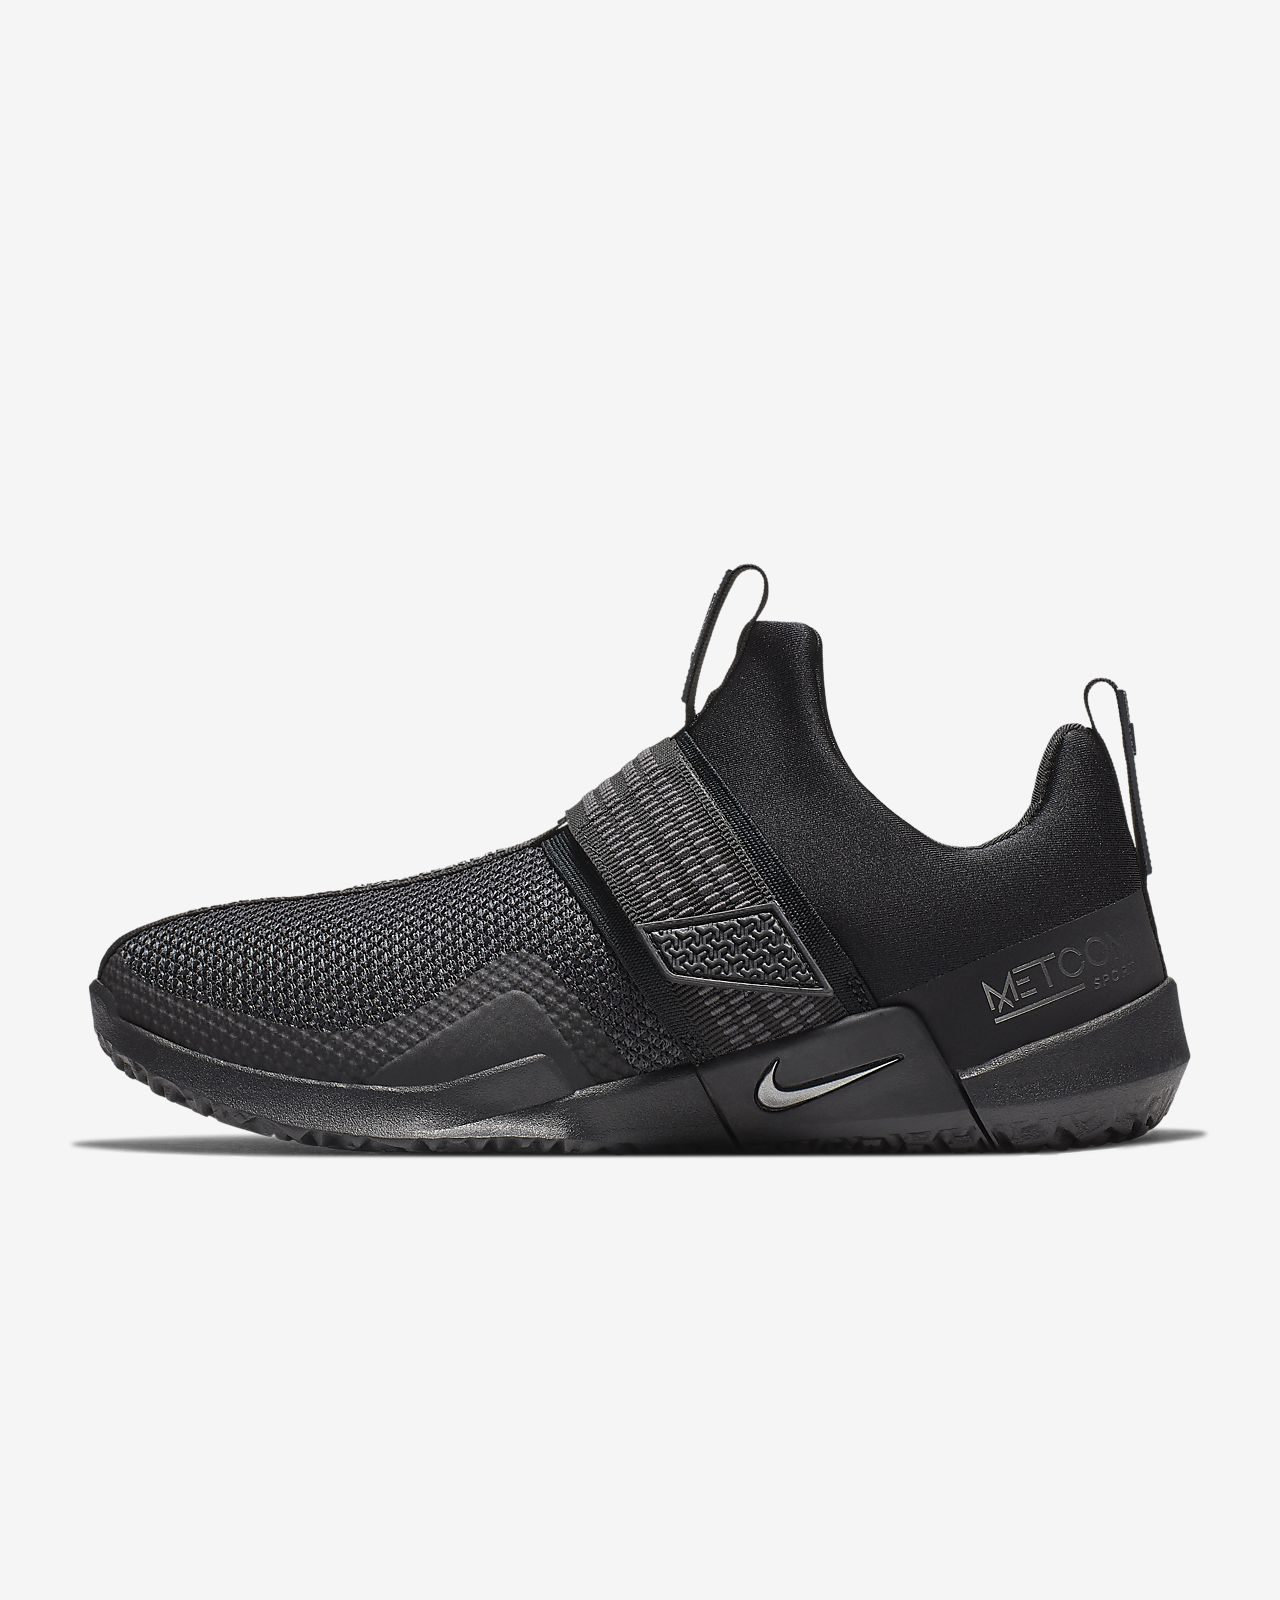 Nike Metcon Sport Men's Training Shoe